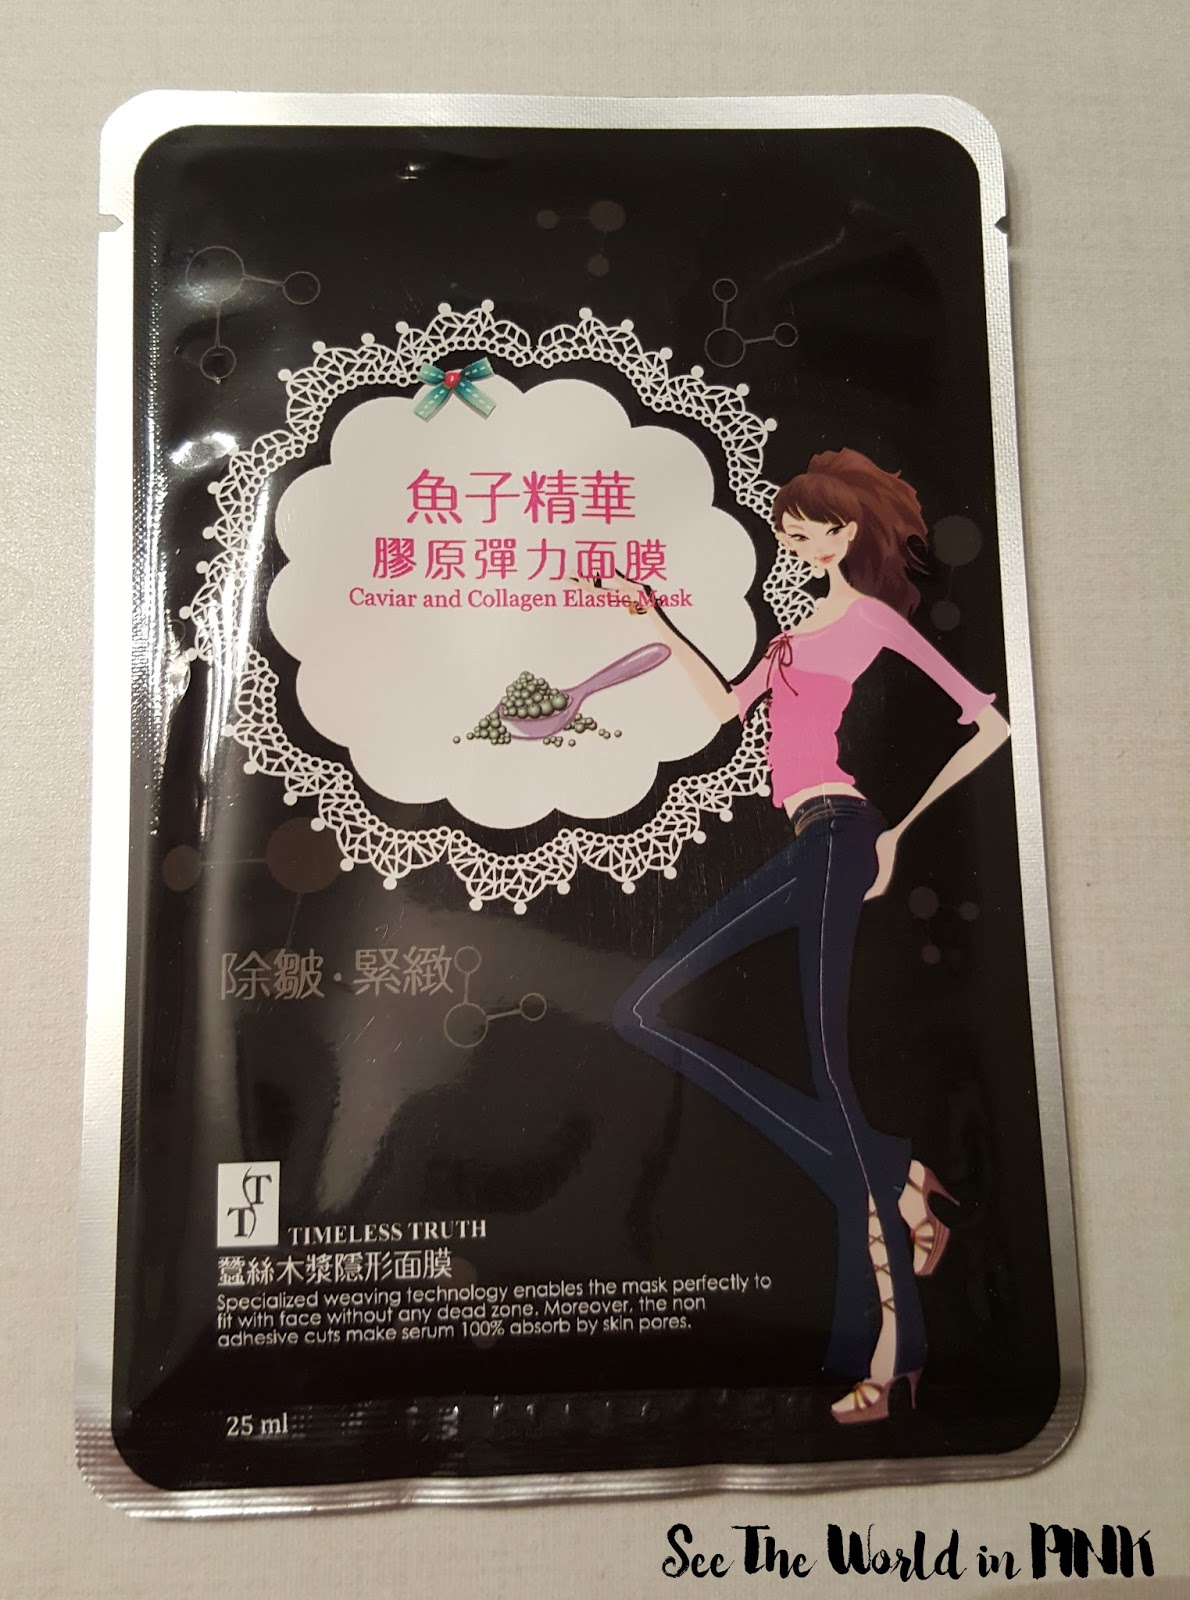 Timeless Truth Caviar and Collagen Elastic Mask